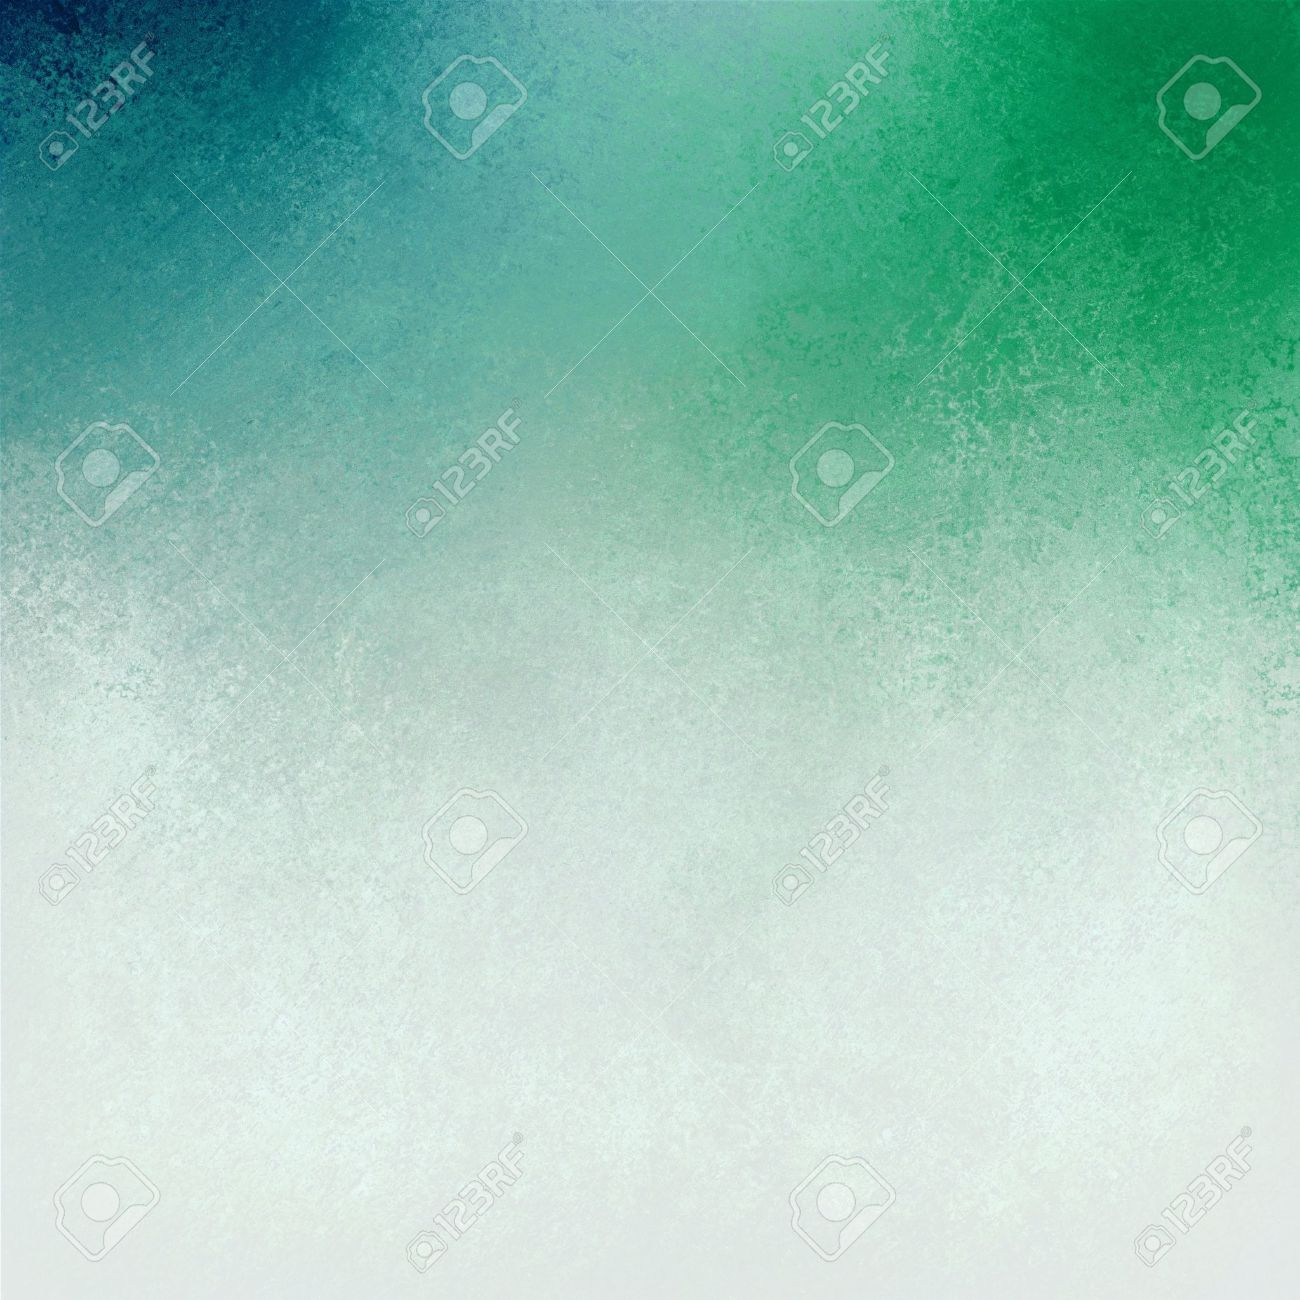 Cool Blue Paint Green Blue White Background Layout Blended Cool Blue And Green